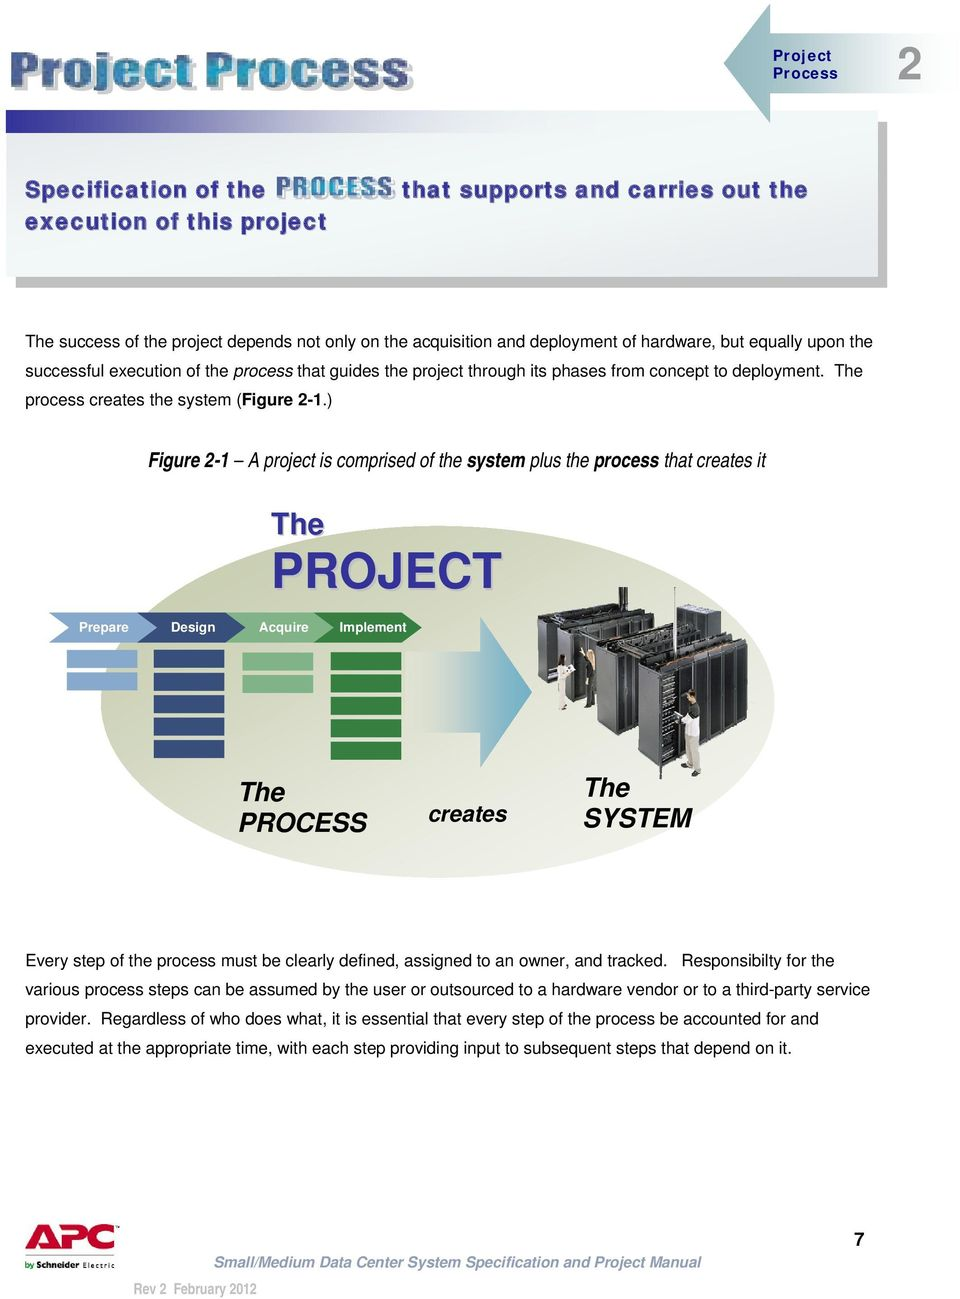 ) Figure 2-1 A project is comprised of the system plus the process that creates it The PROJECT Prepare Design Acquire Implement The PROCESS creates The SYSTEM Every step of the process must be